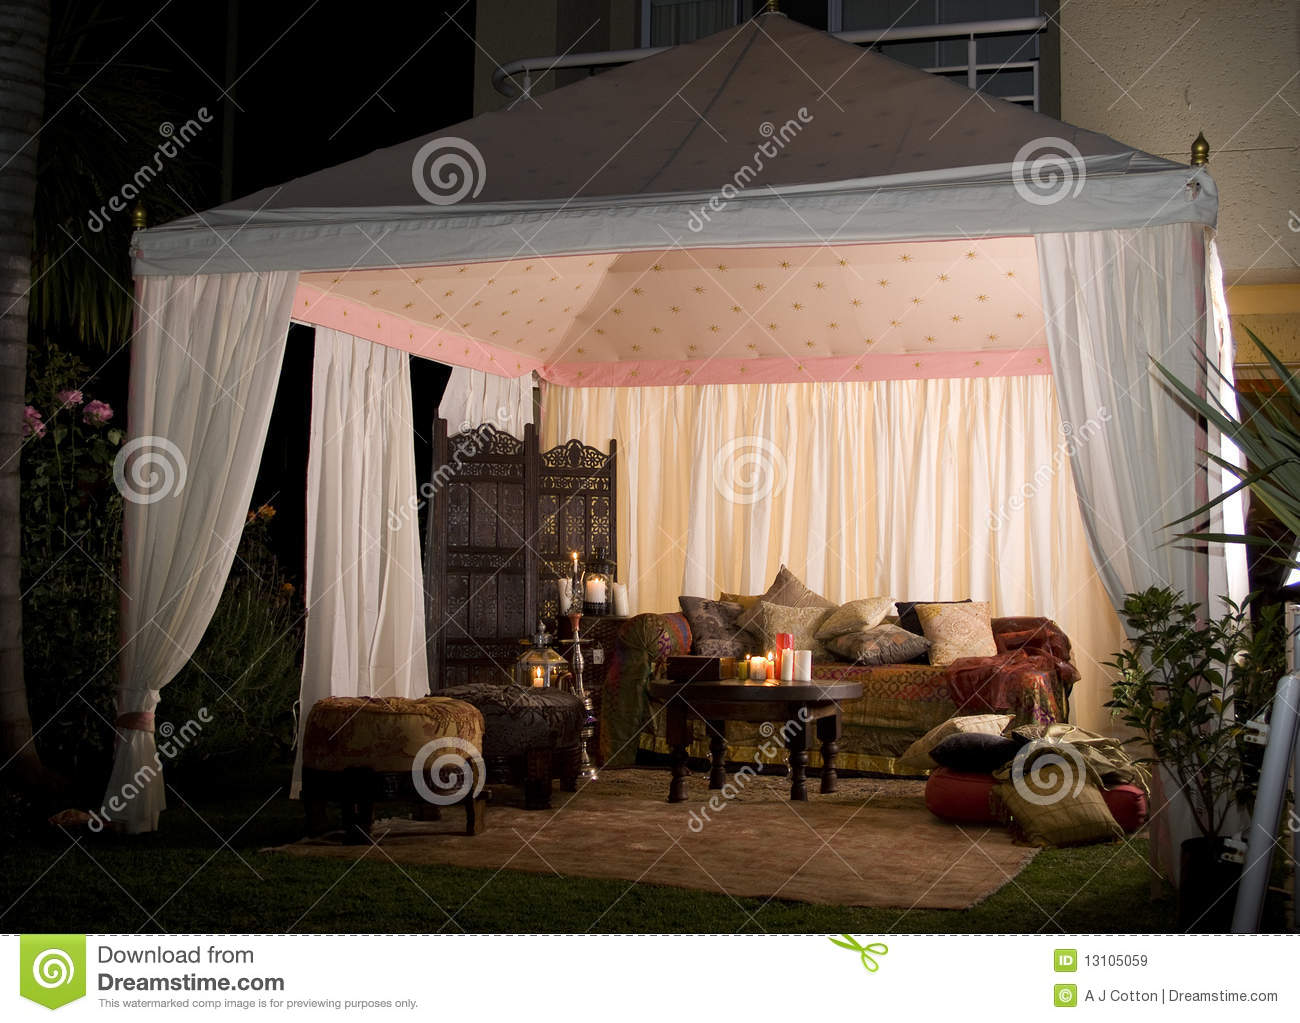 Party or wedding tent at night royalty free stock images   image ...